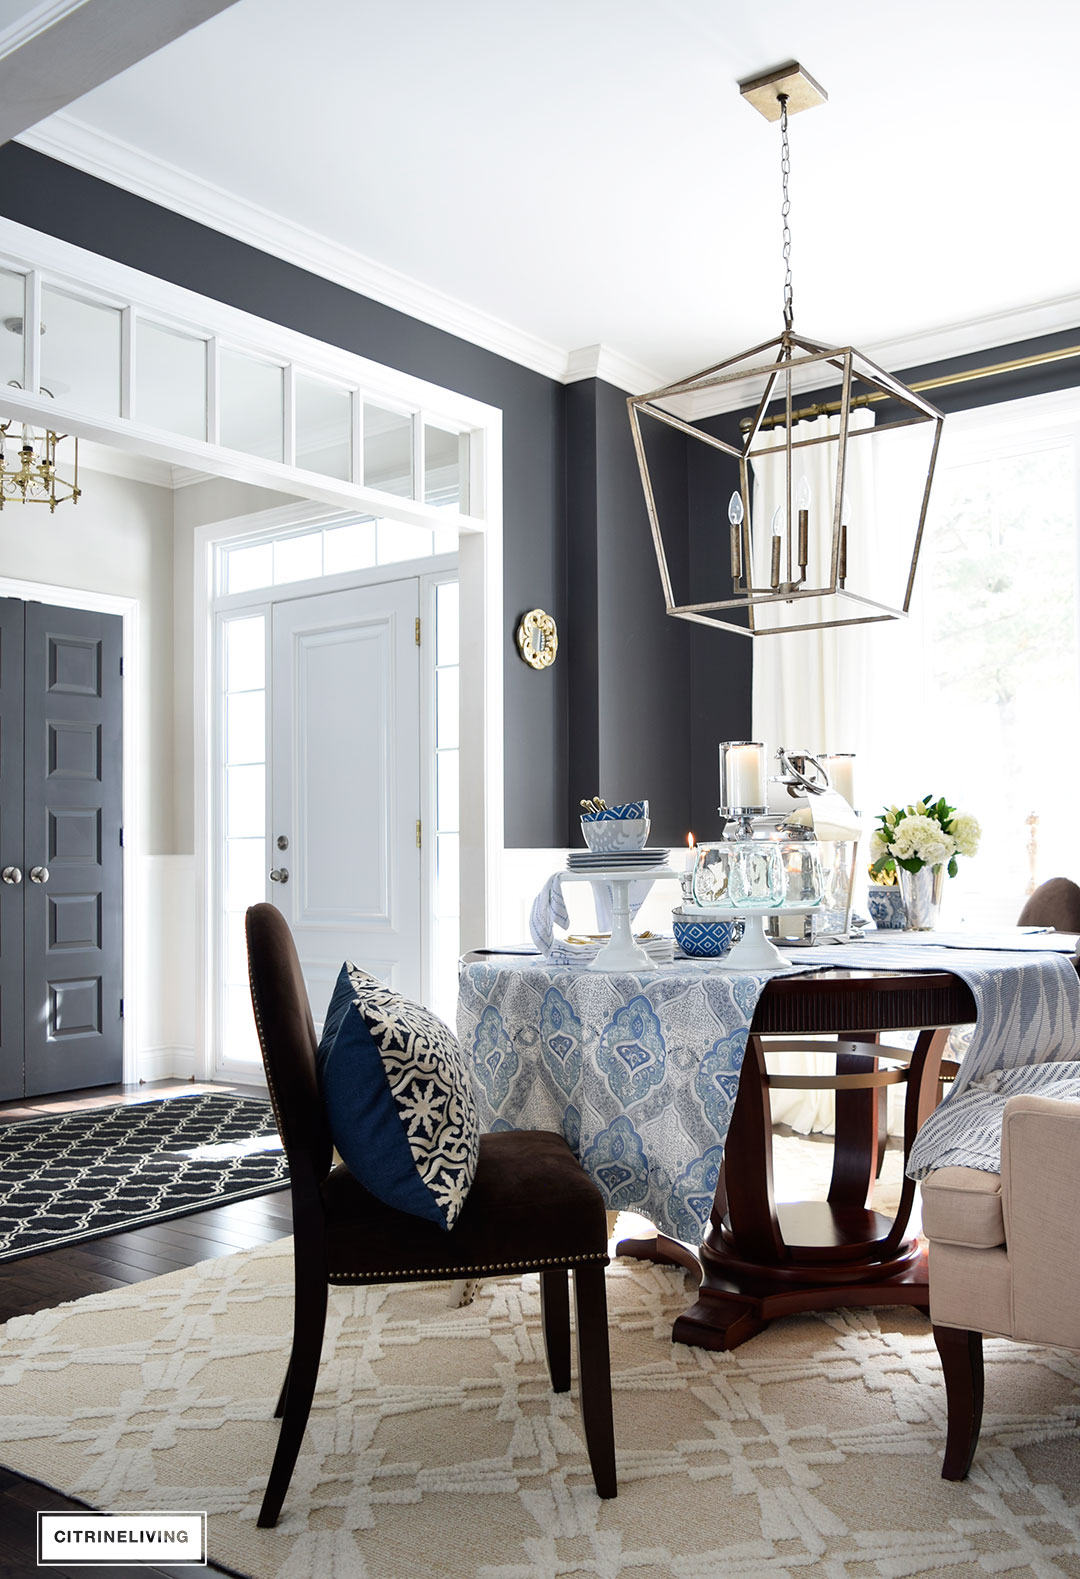 Bright, open concept dining room with a blue and white table set for Spring entertaining.